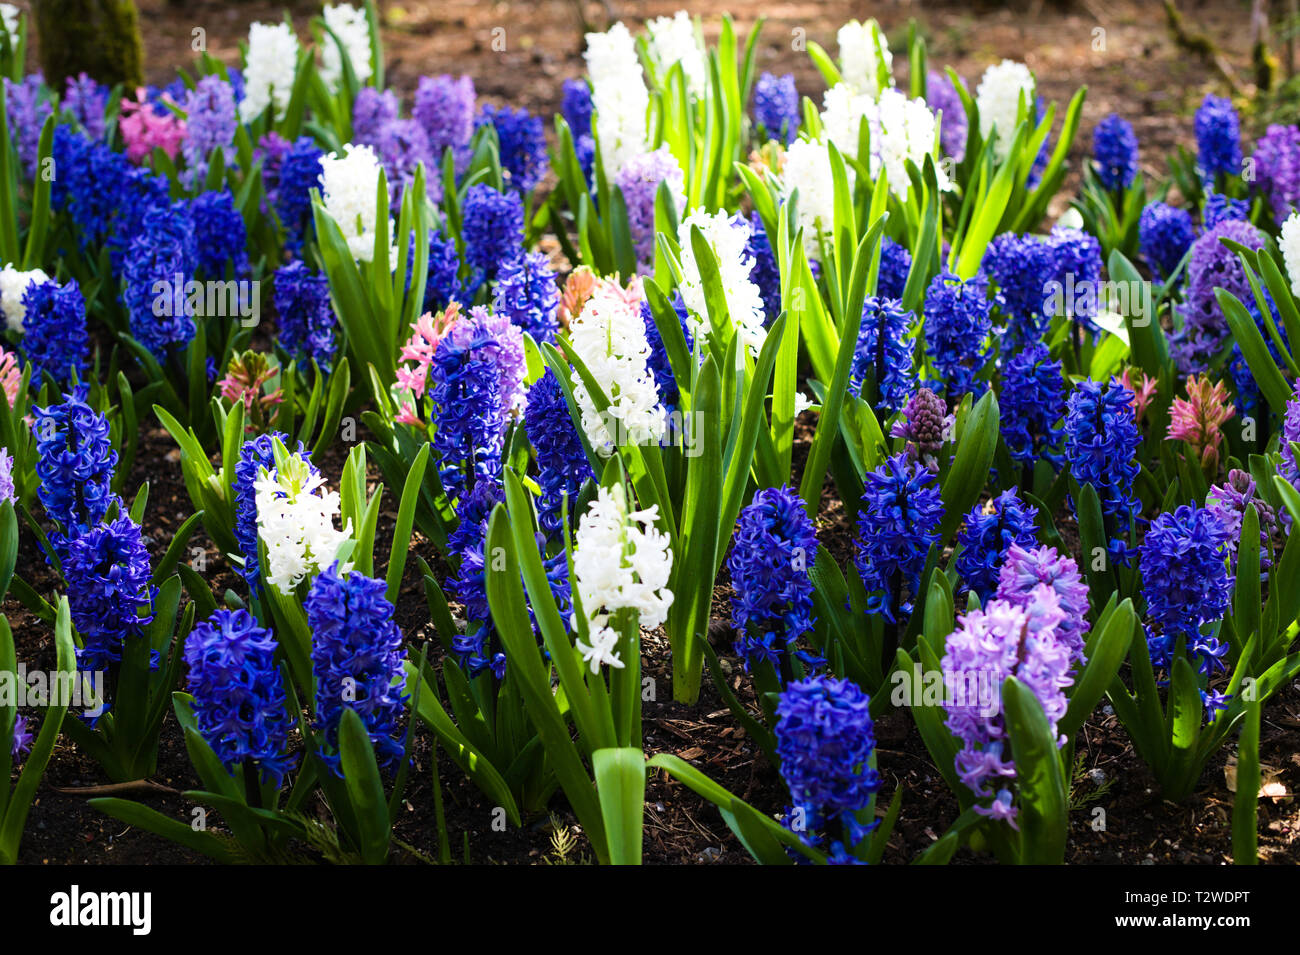 Colorful Flowers in the Gardens in Bear Creek Park, Surrey, British Columbia, Canada - Stock Image